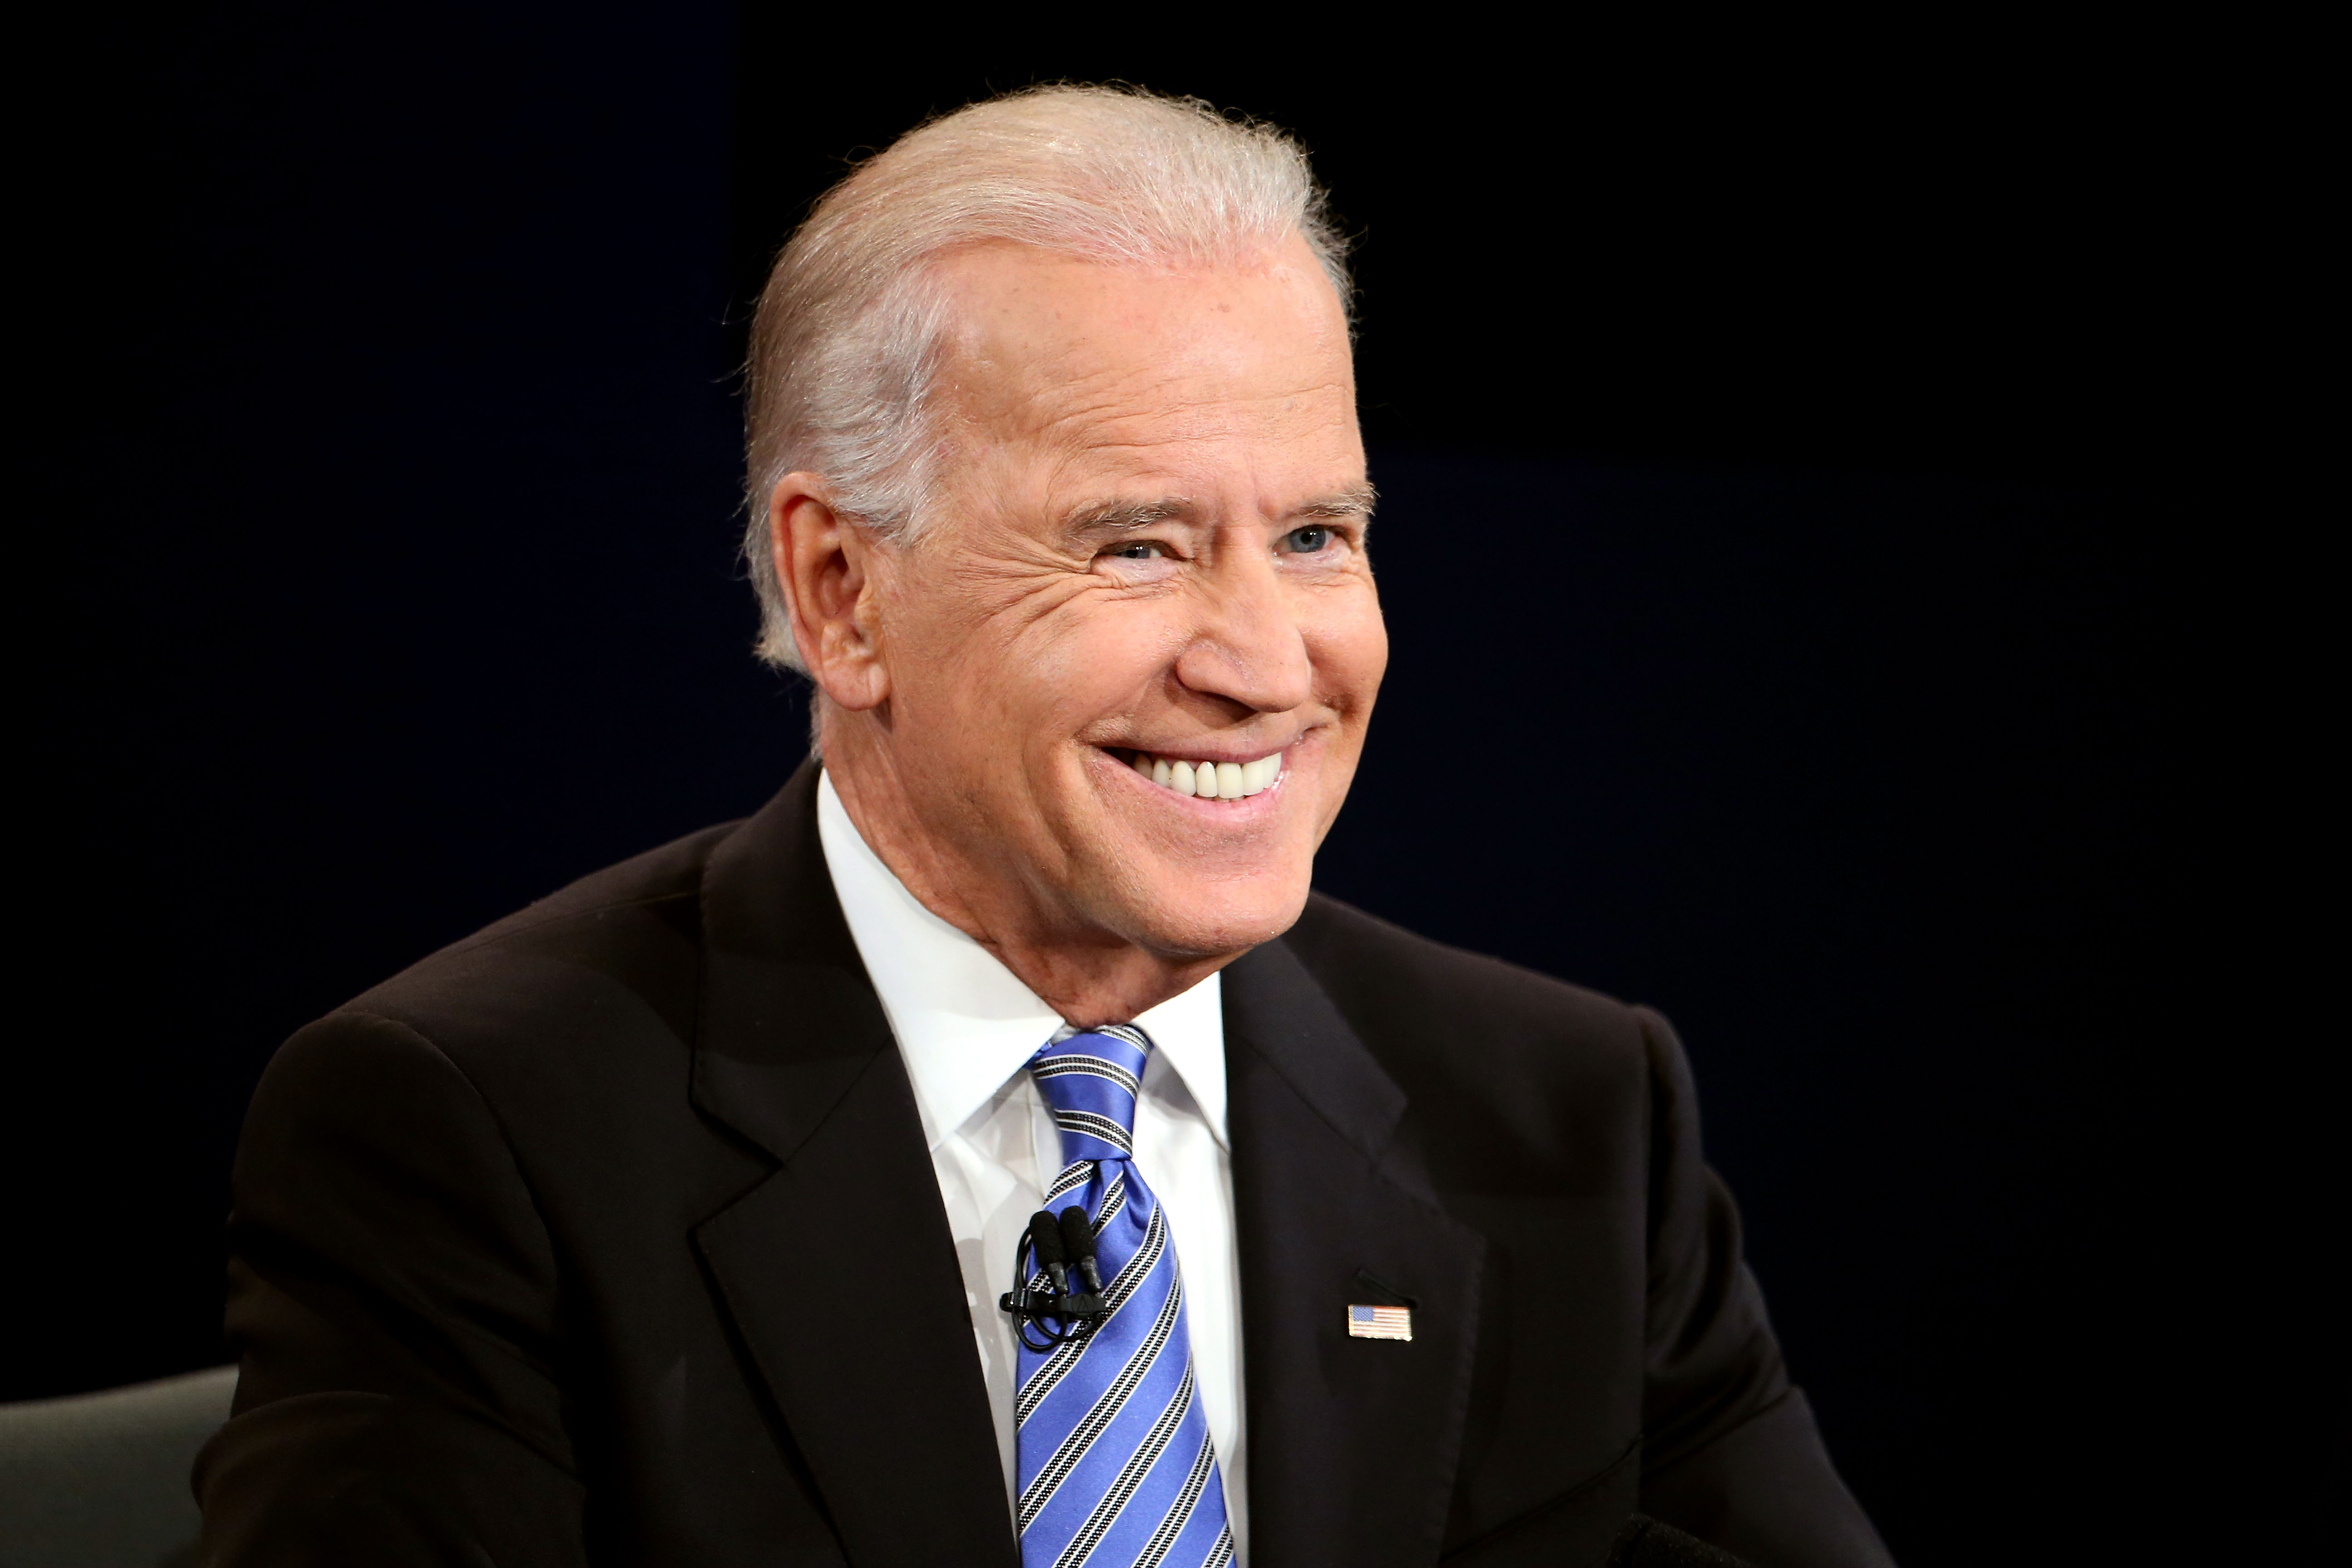 Joe Biden smiles during the vice presidential debate at Centre College October 11, 2012 in Danville, Kentucky. This is the second of four debates during the presidential election season and the only debate between the vice presidential candidates before the closely-contested election November 6. (Photo by Chip Somodevilla/Getty Images)